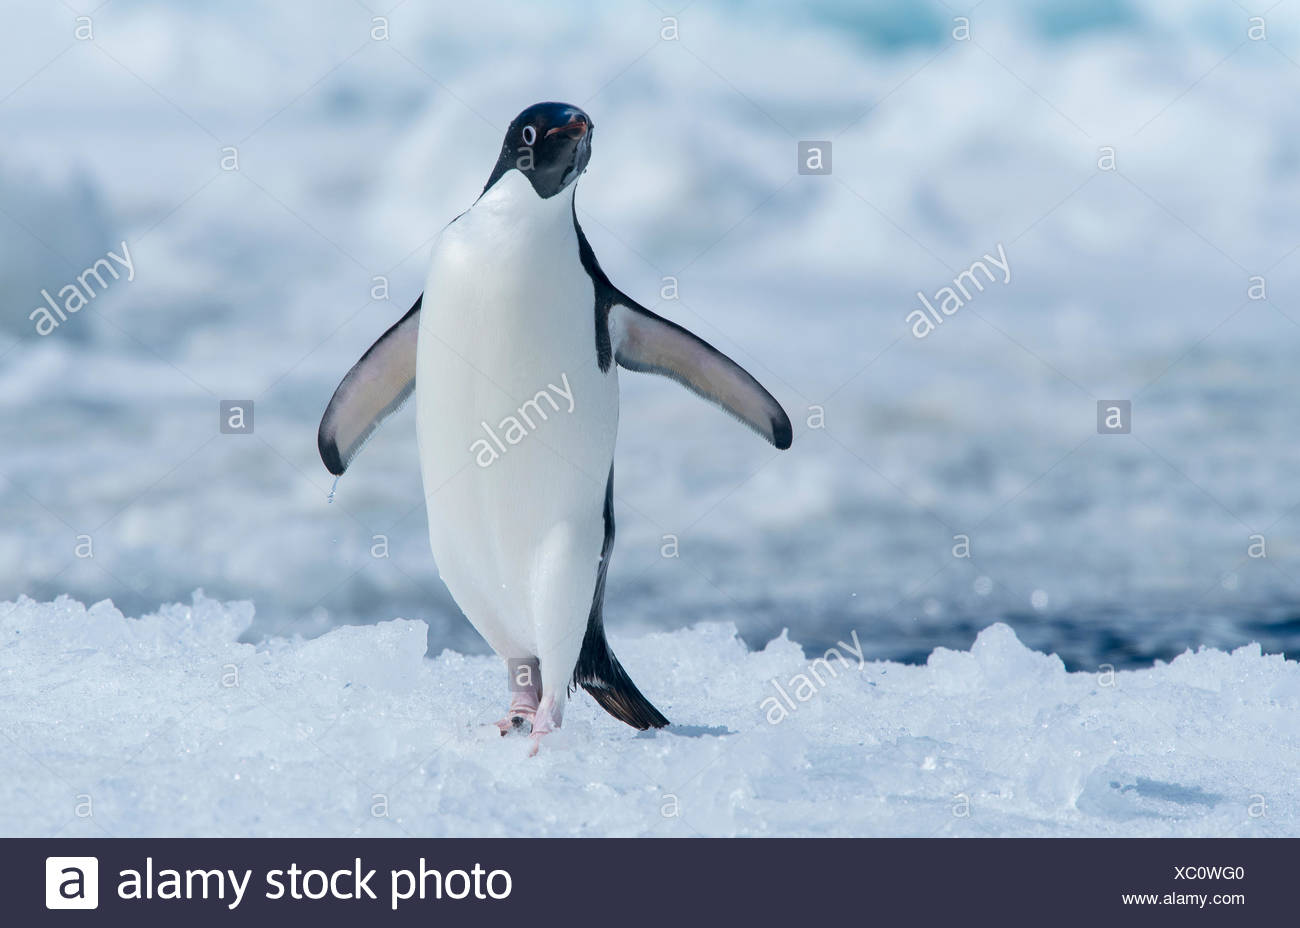 An Adelie penguin lands on the ice after jumping out of the nearby water in Antarctica. - Stock Image